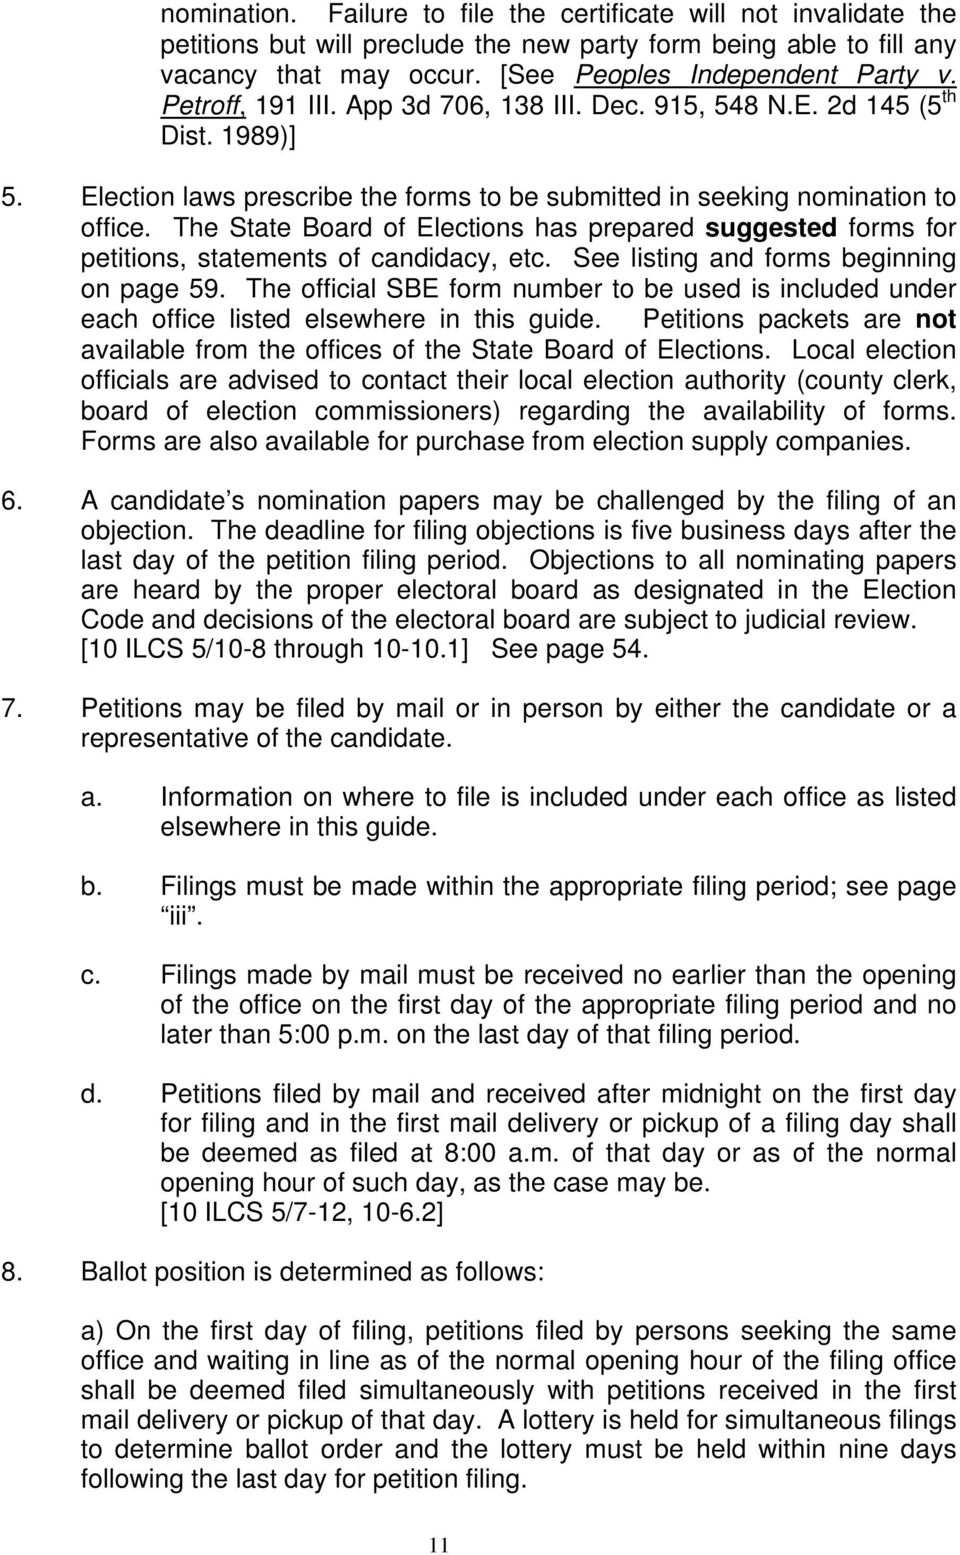 The State Board of Elections has prepared suggested forms for petitions, statements of candidacy, etc. See listing and forms beginning on page 59.